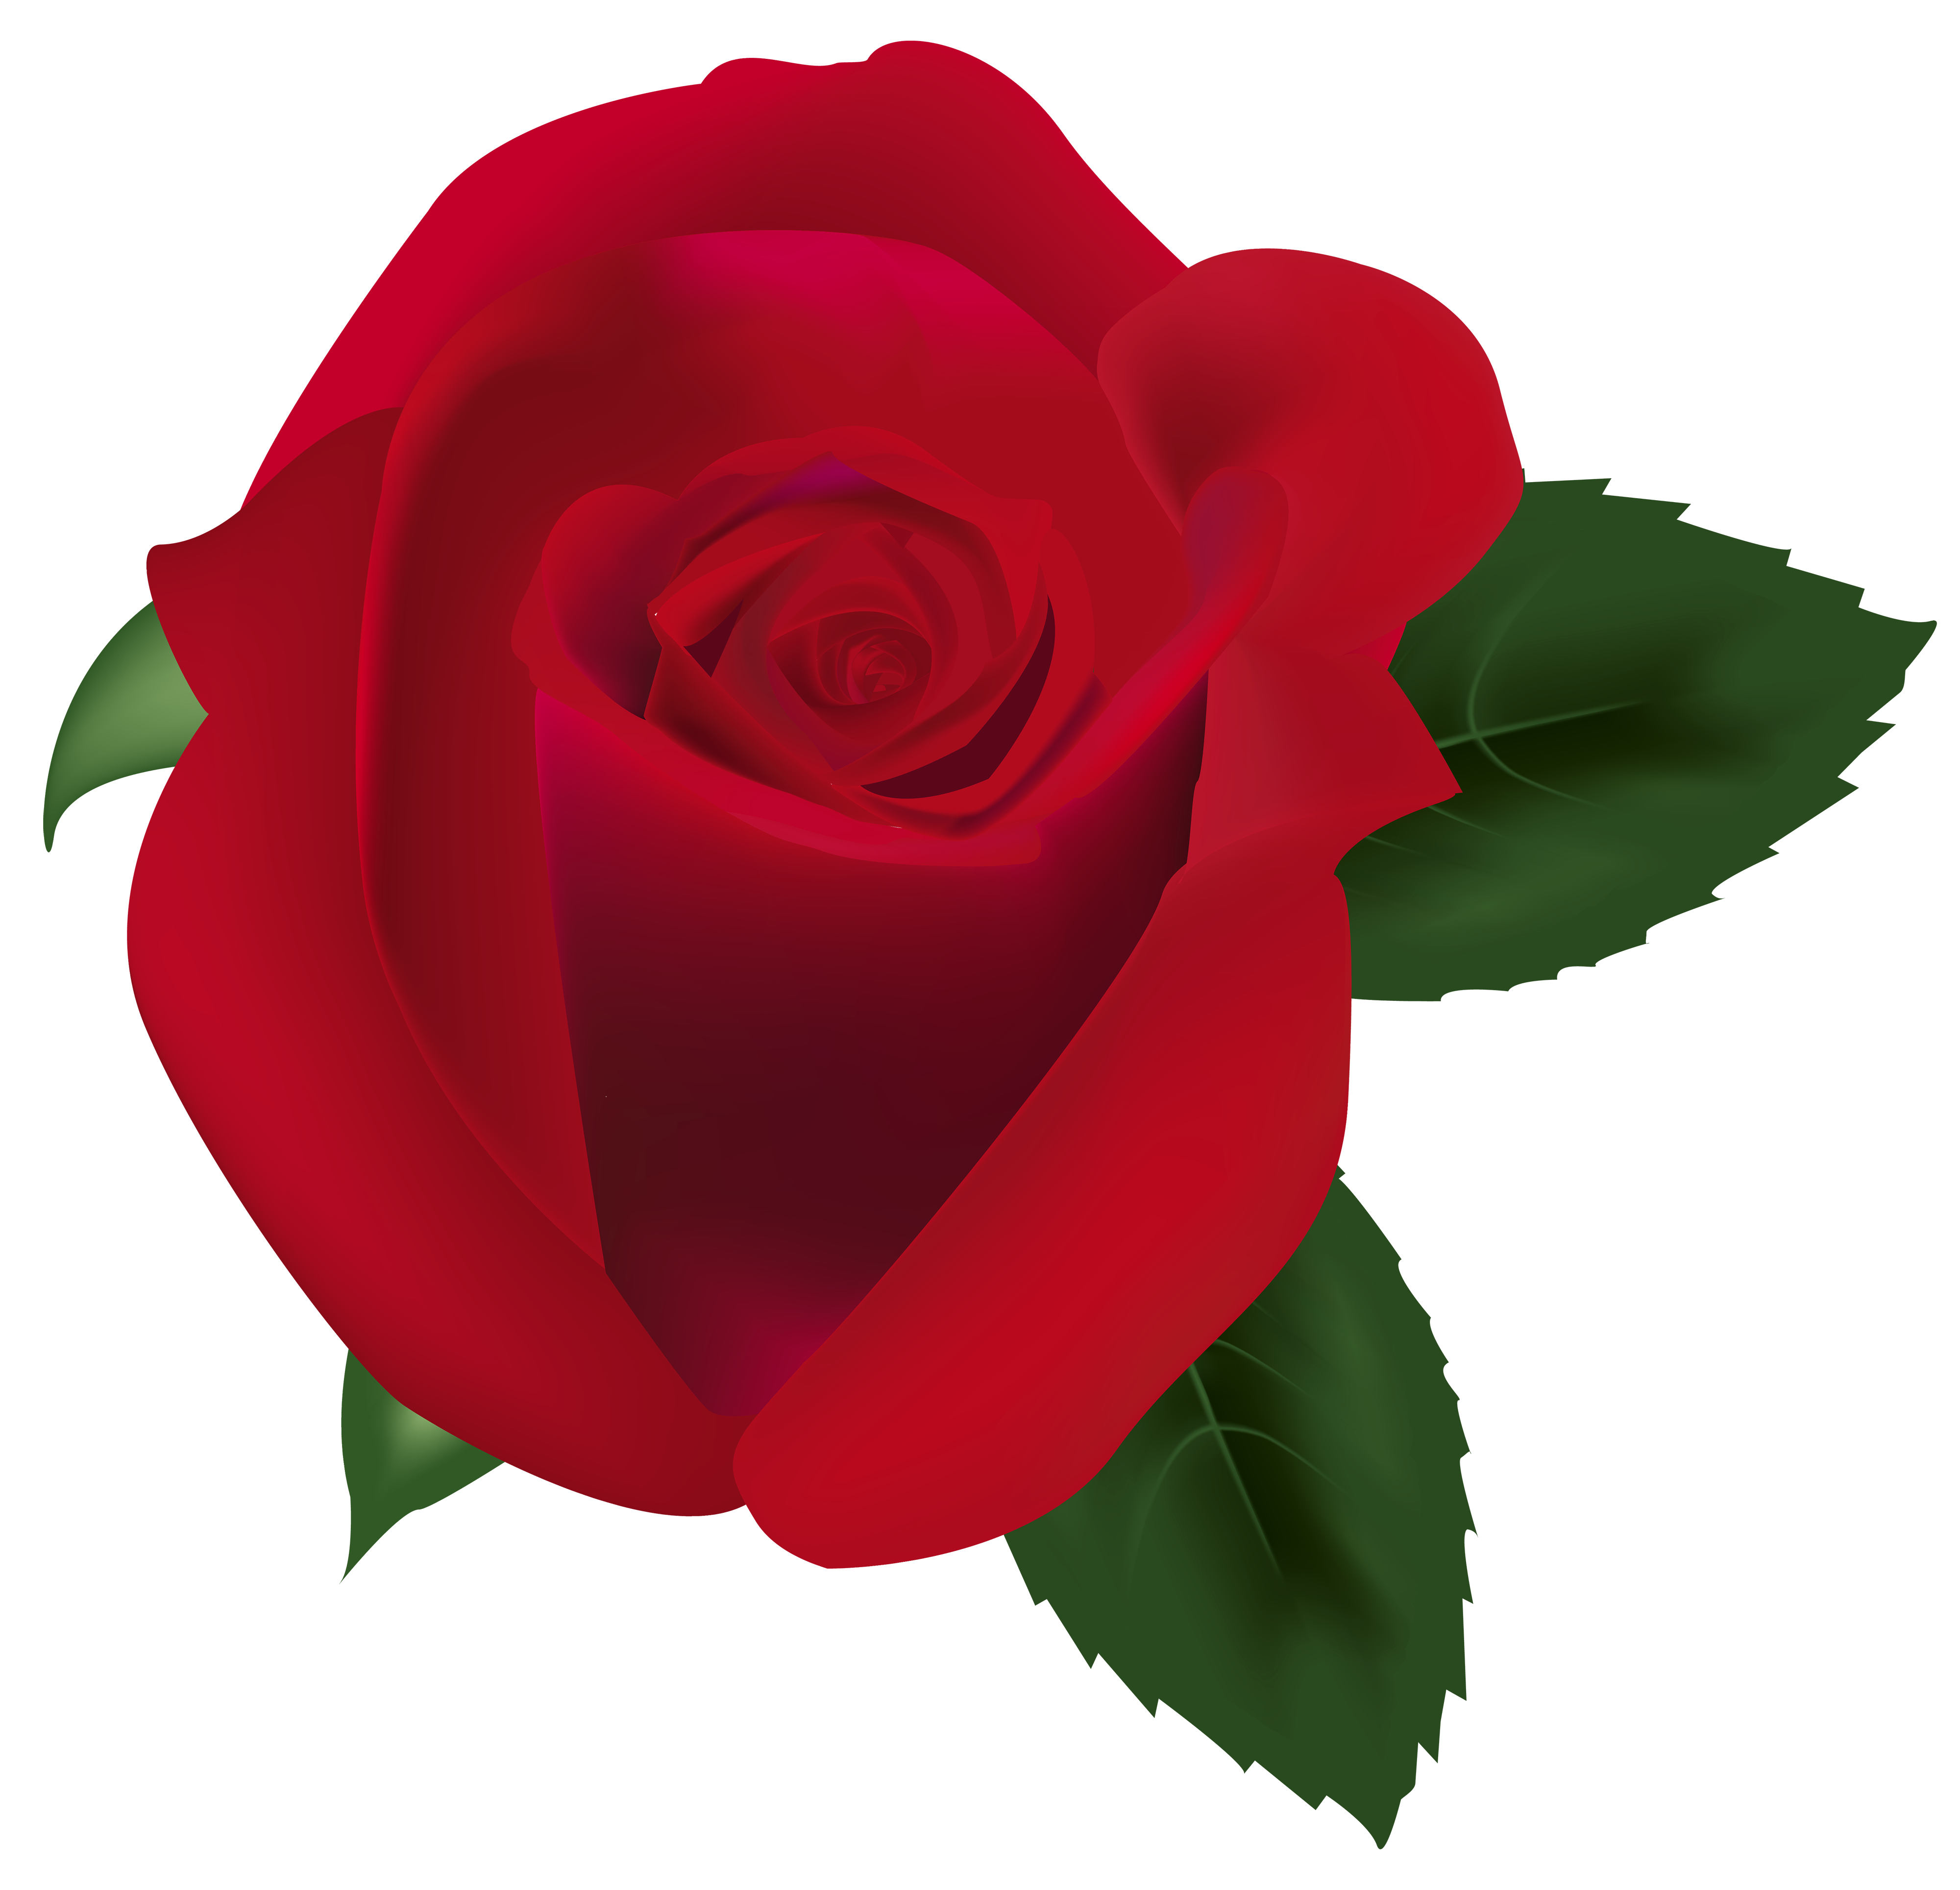 Clipart roses knife. Red rose png image